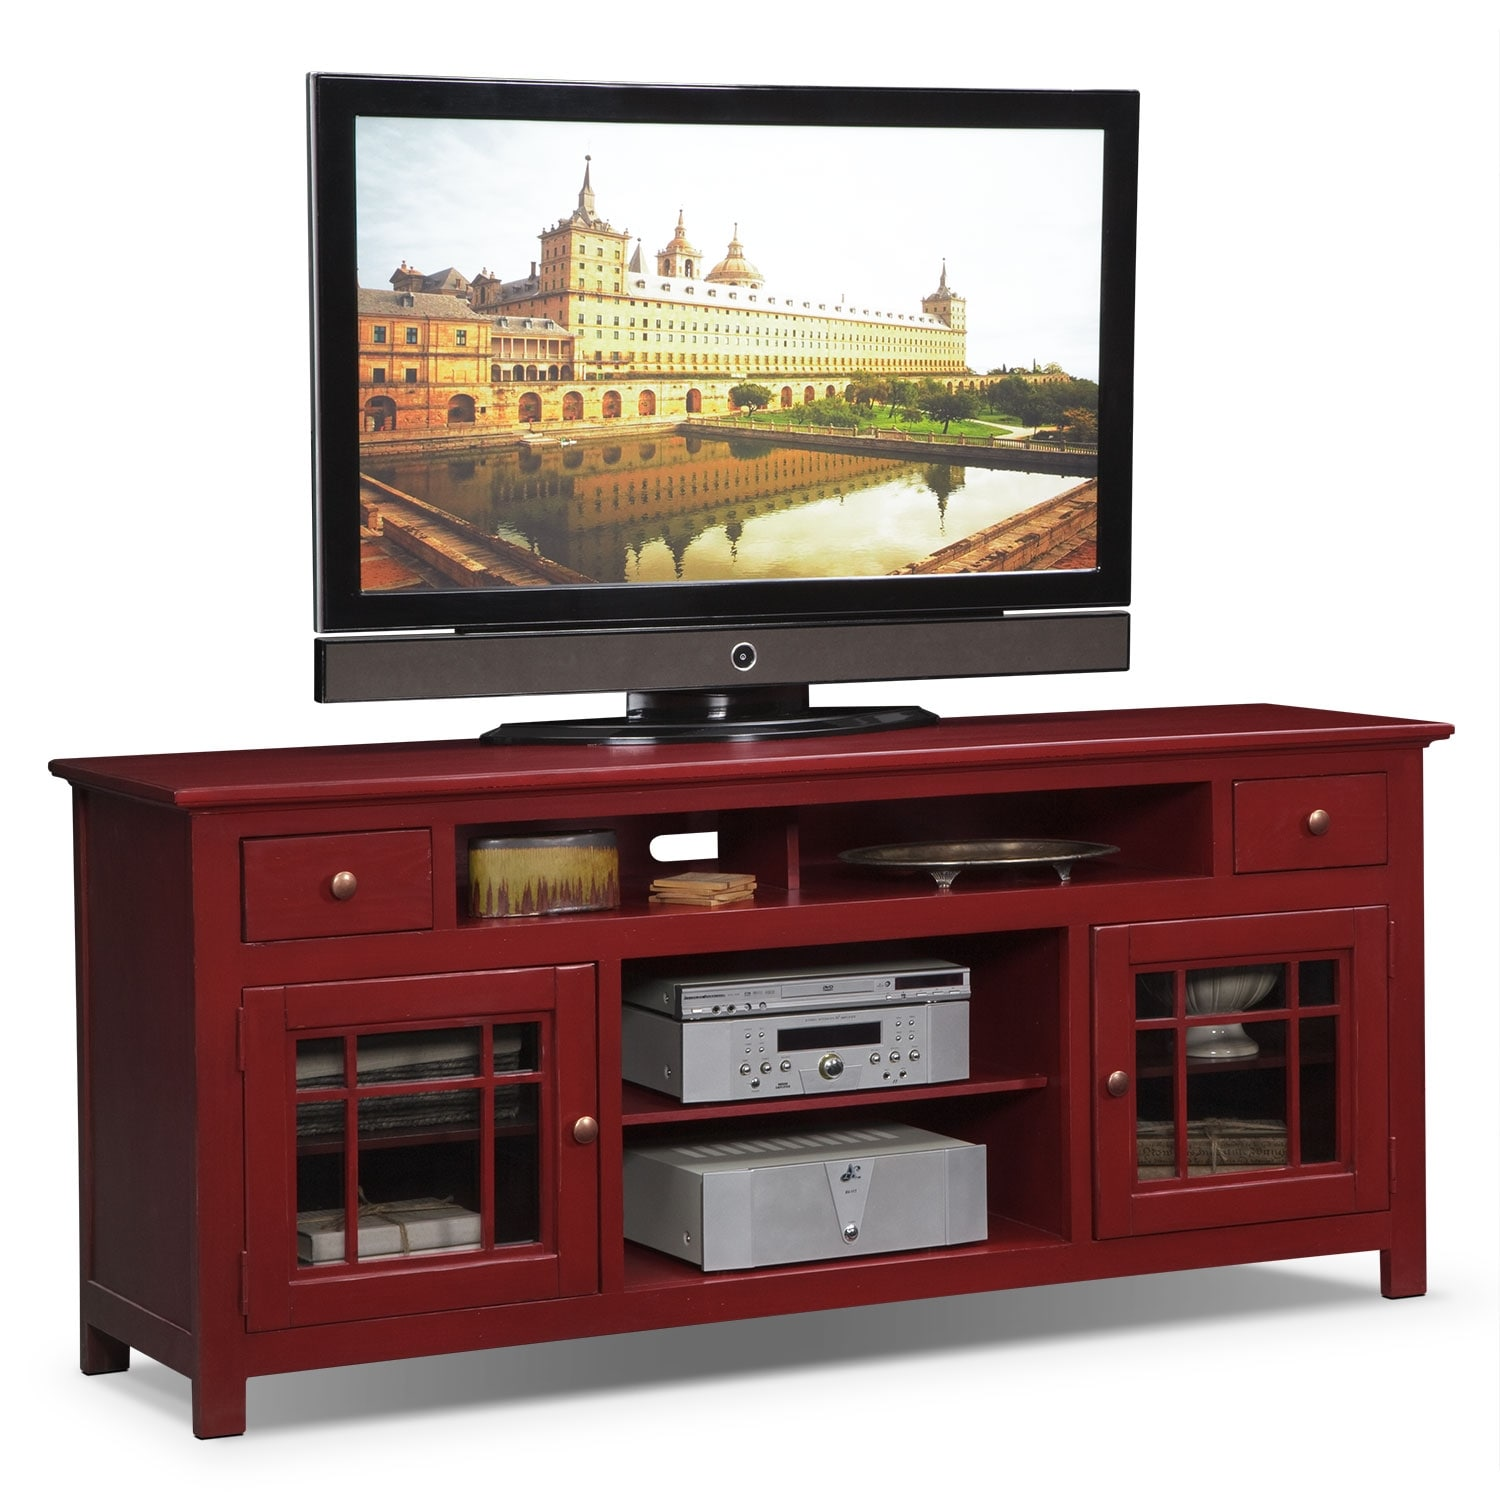 Merrick 74 Quot Tv Stand Red Value City Furniture